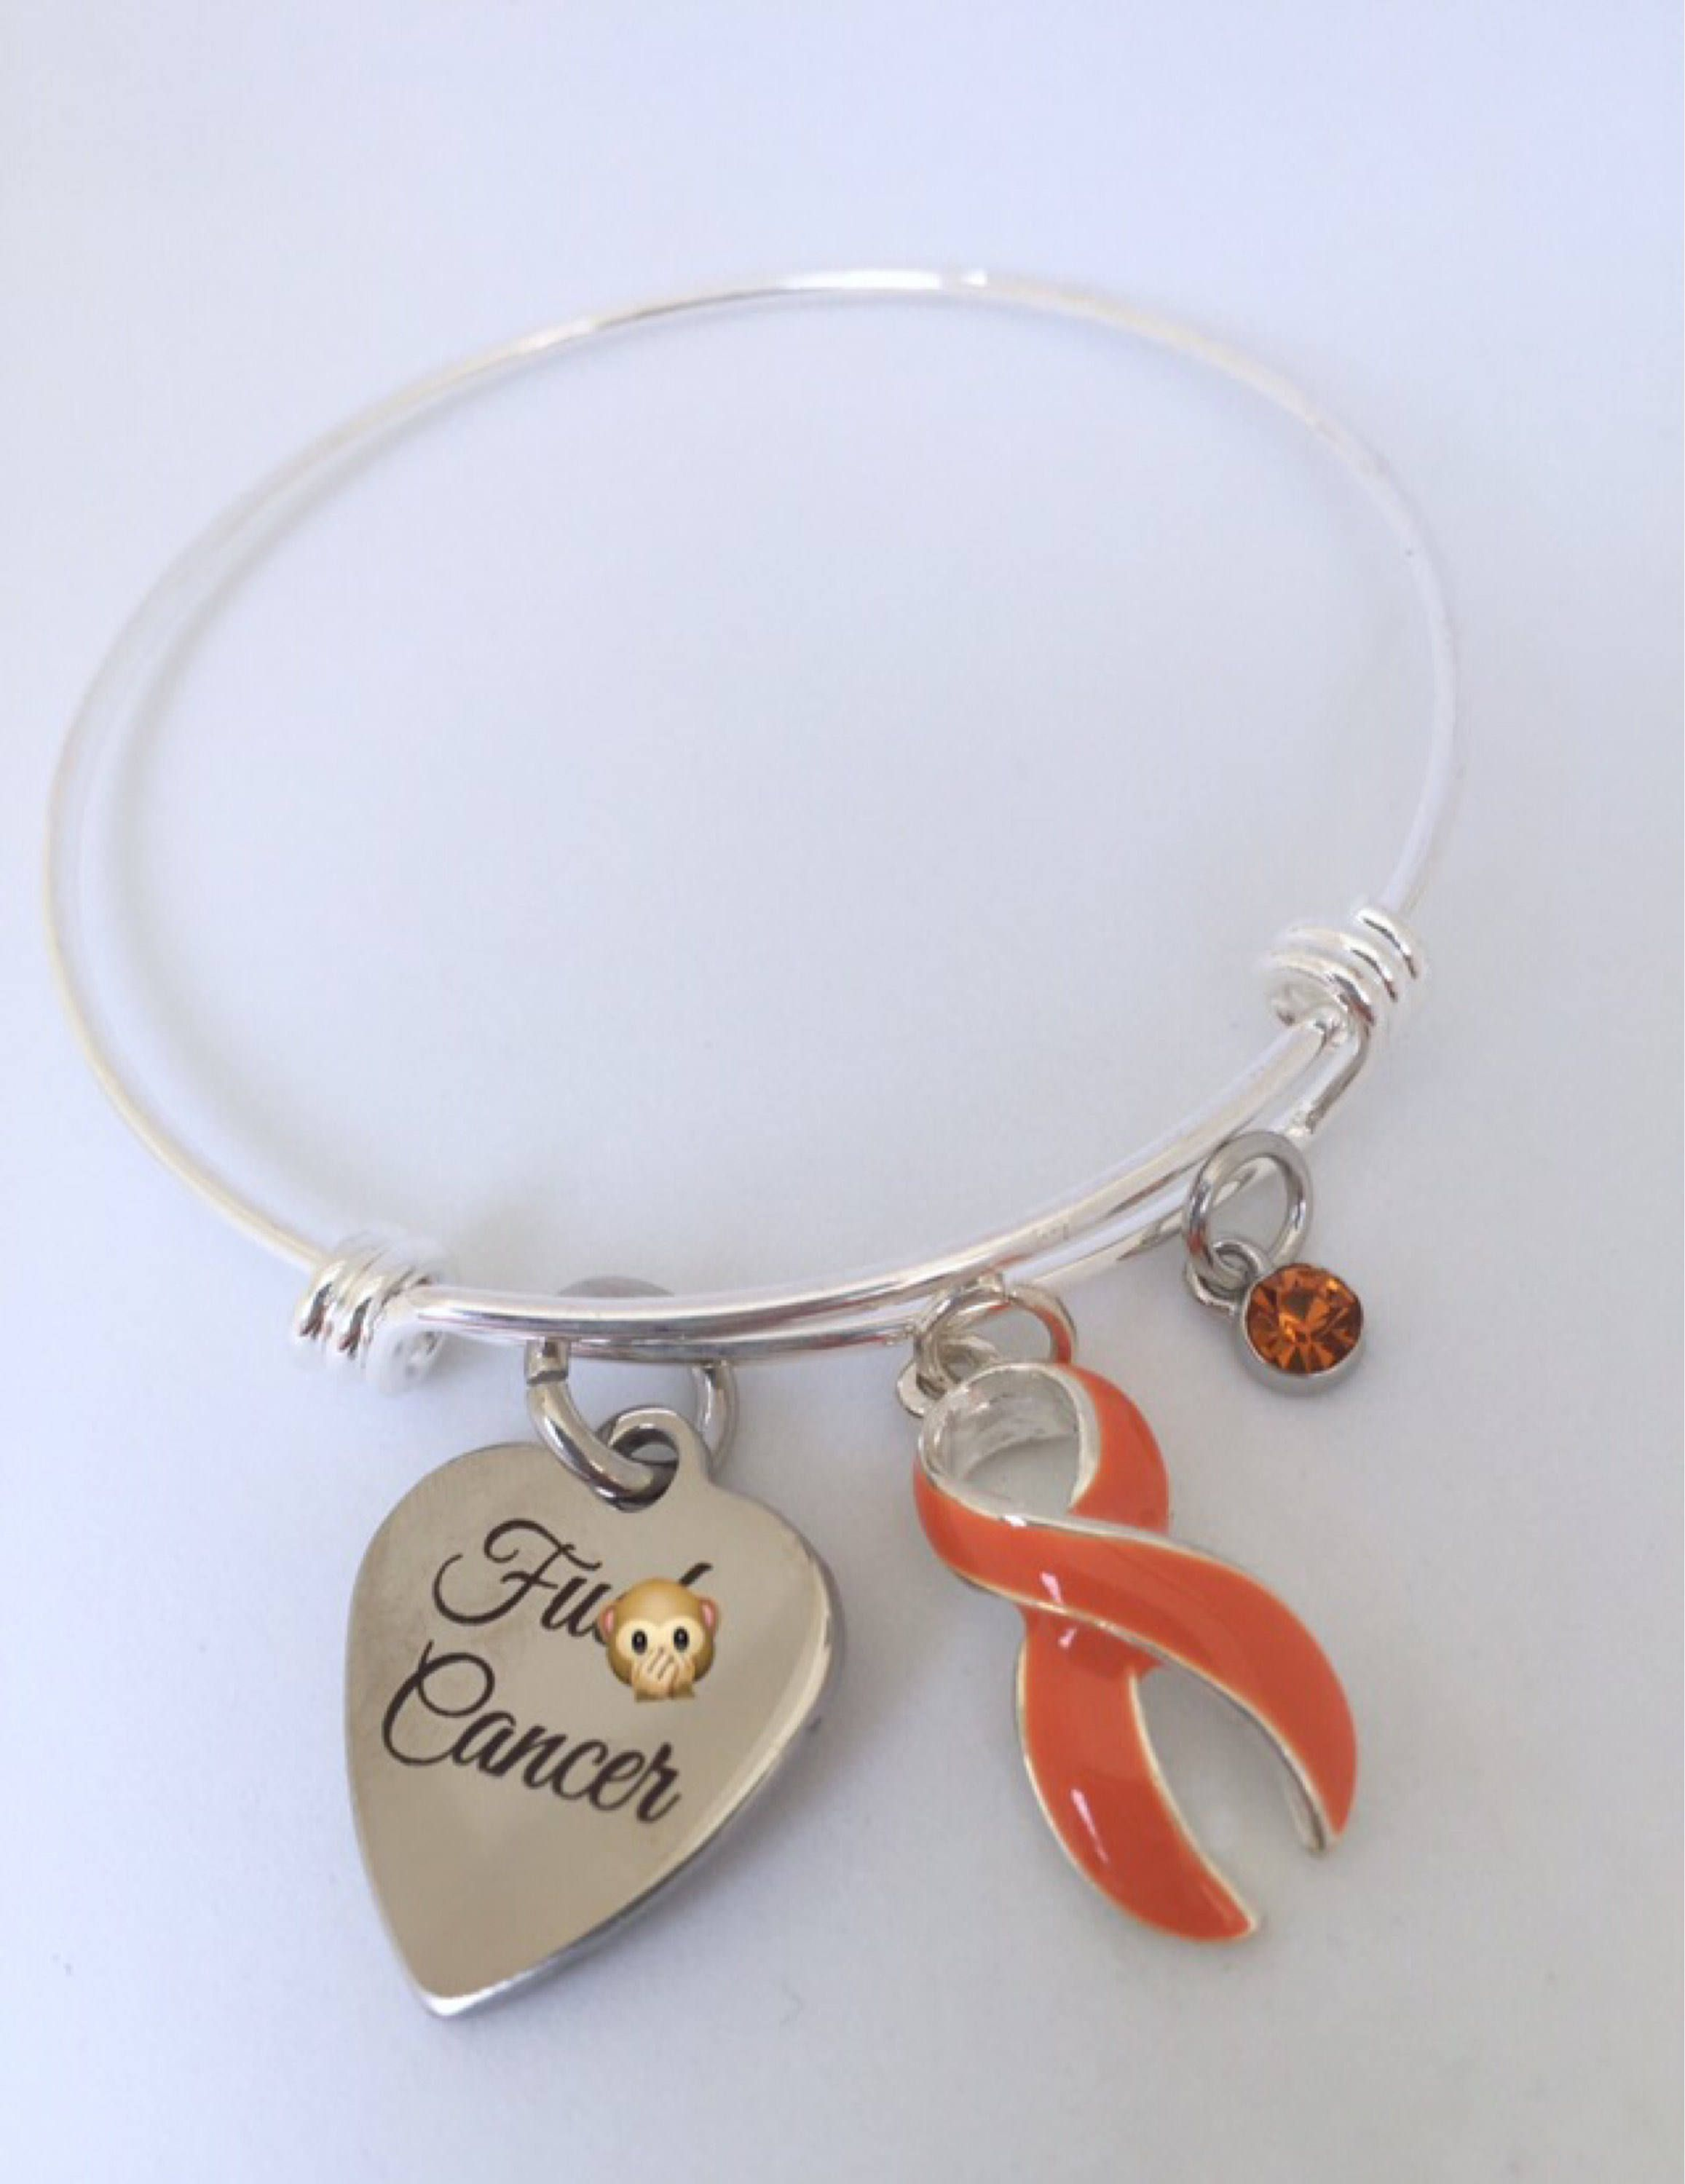 bracelet leukemia awareness fundraising by hollow amazon kidney campaign hidden dp jewelry in com or orange